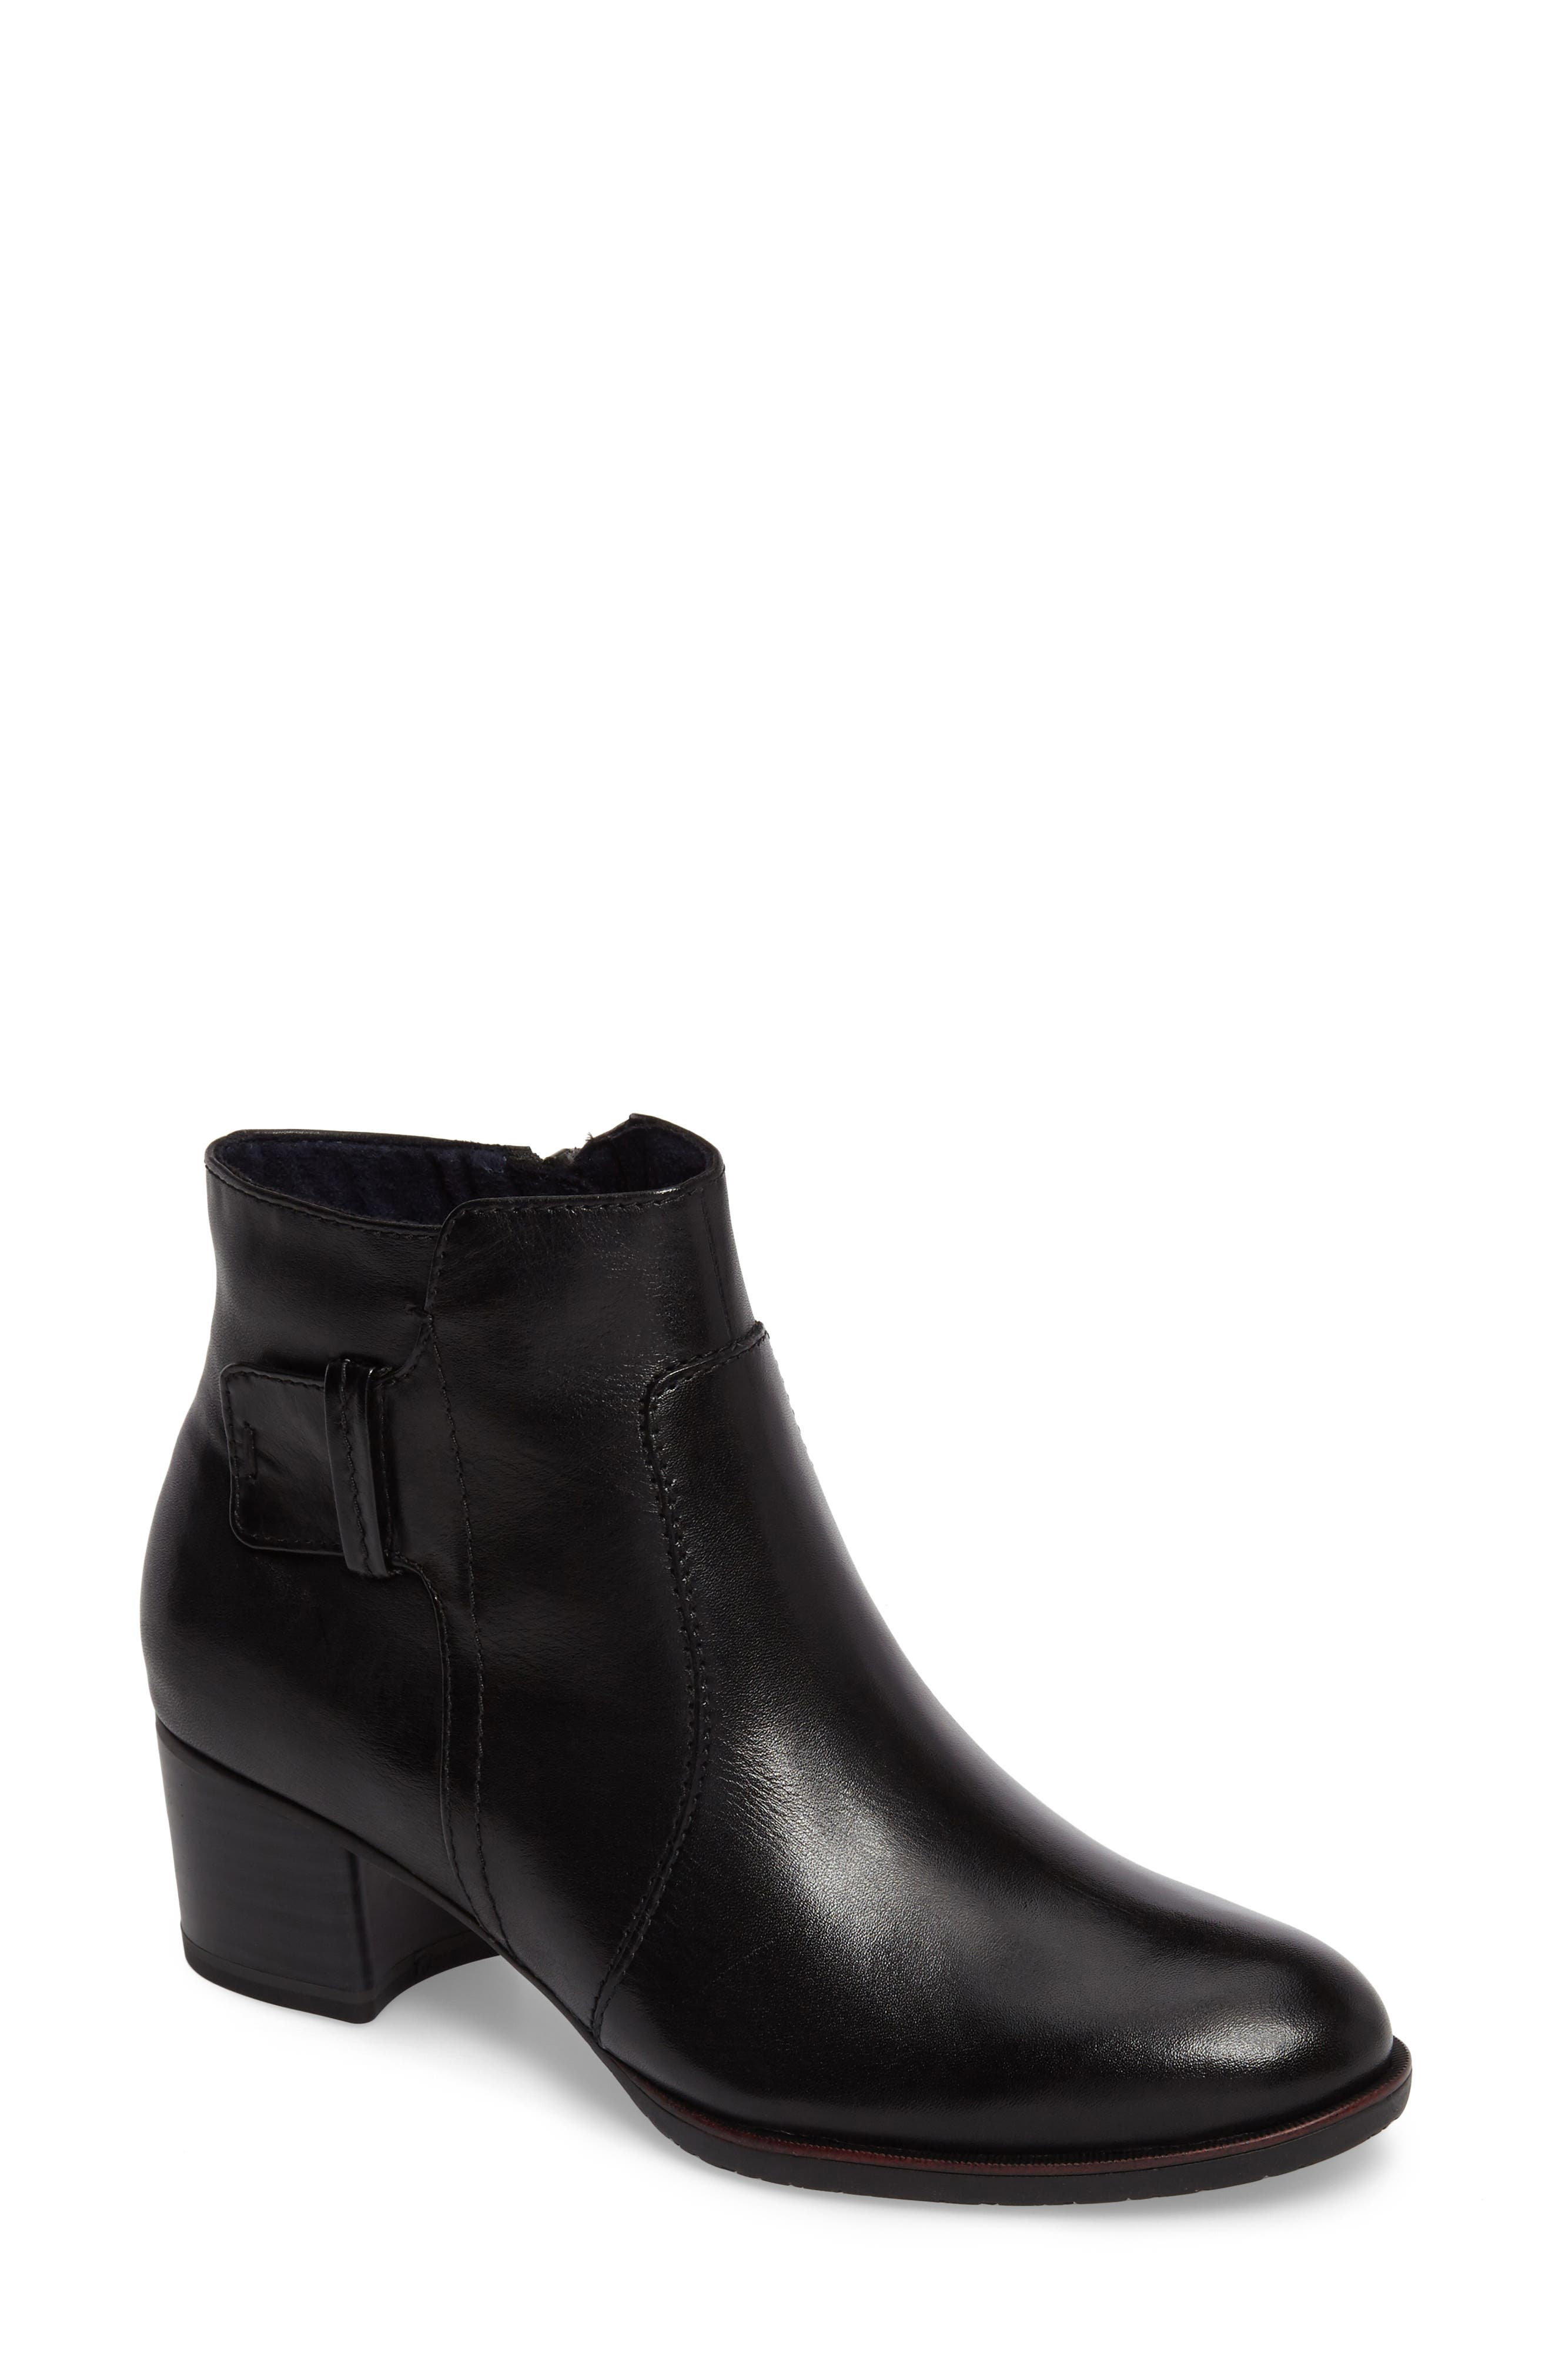 Akaria Mixed Finish Bootie,                         Main,                         color, Black Leather